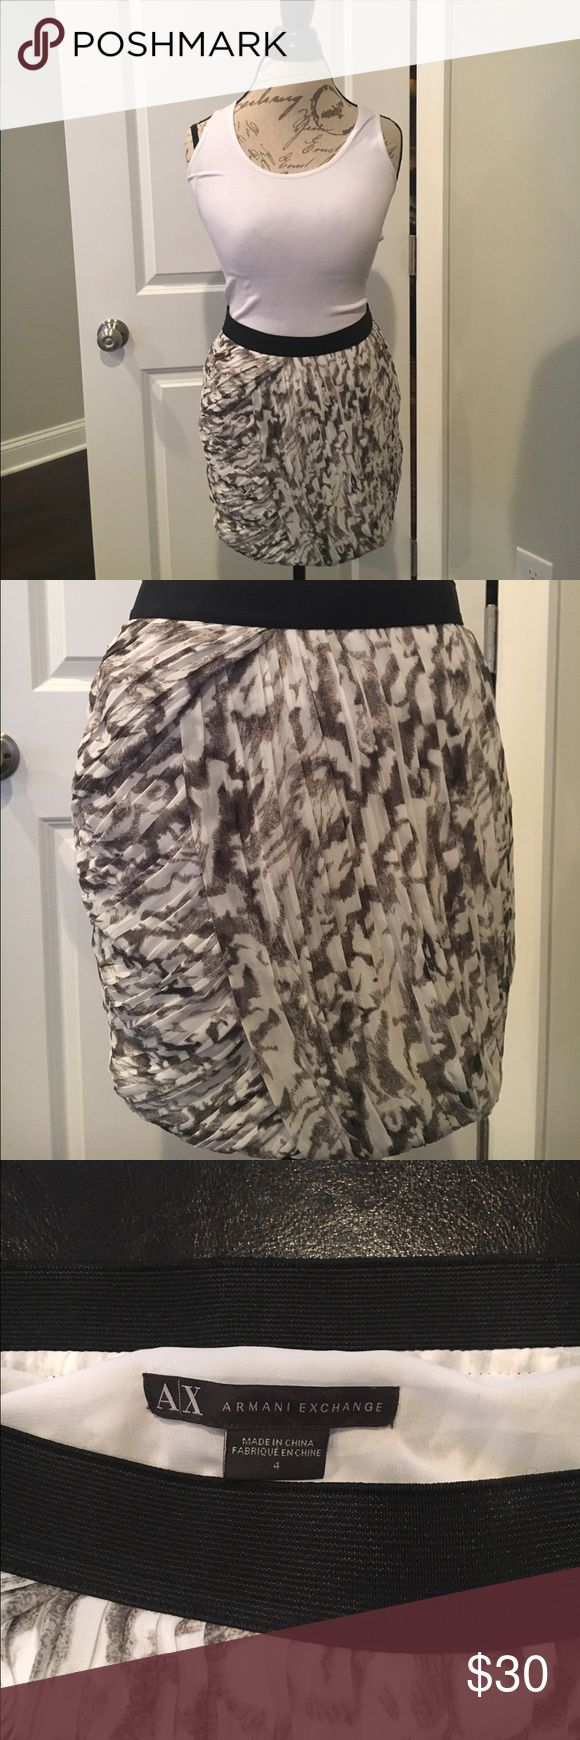 "Armani Exchange Skirt Beautiful black and white by Armani Exchange. Size 4 and measures about 15"" from the top of waistband to bottom of skirt.  Black elastic waist band for comfort and a side zip with clasp for closure. Armani Exchange Skirts"